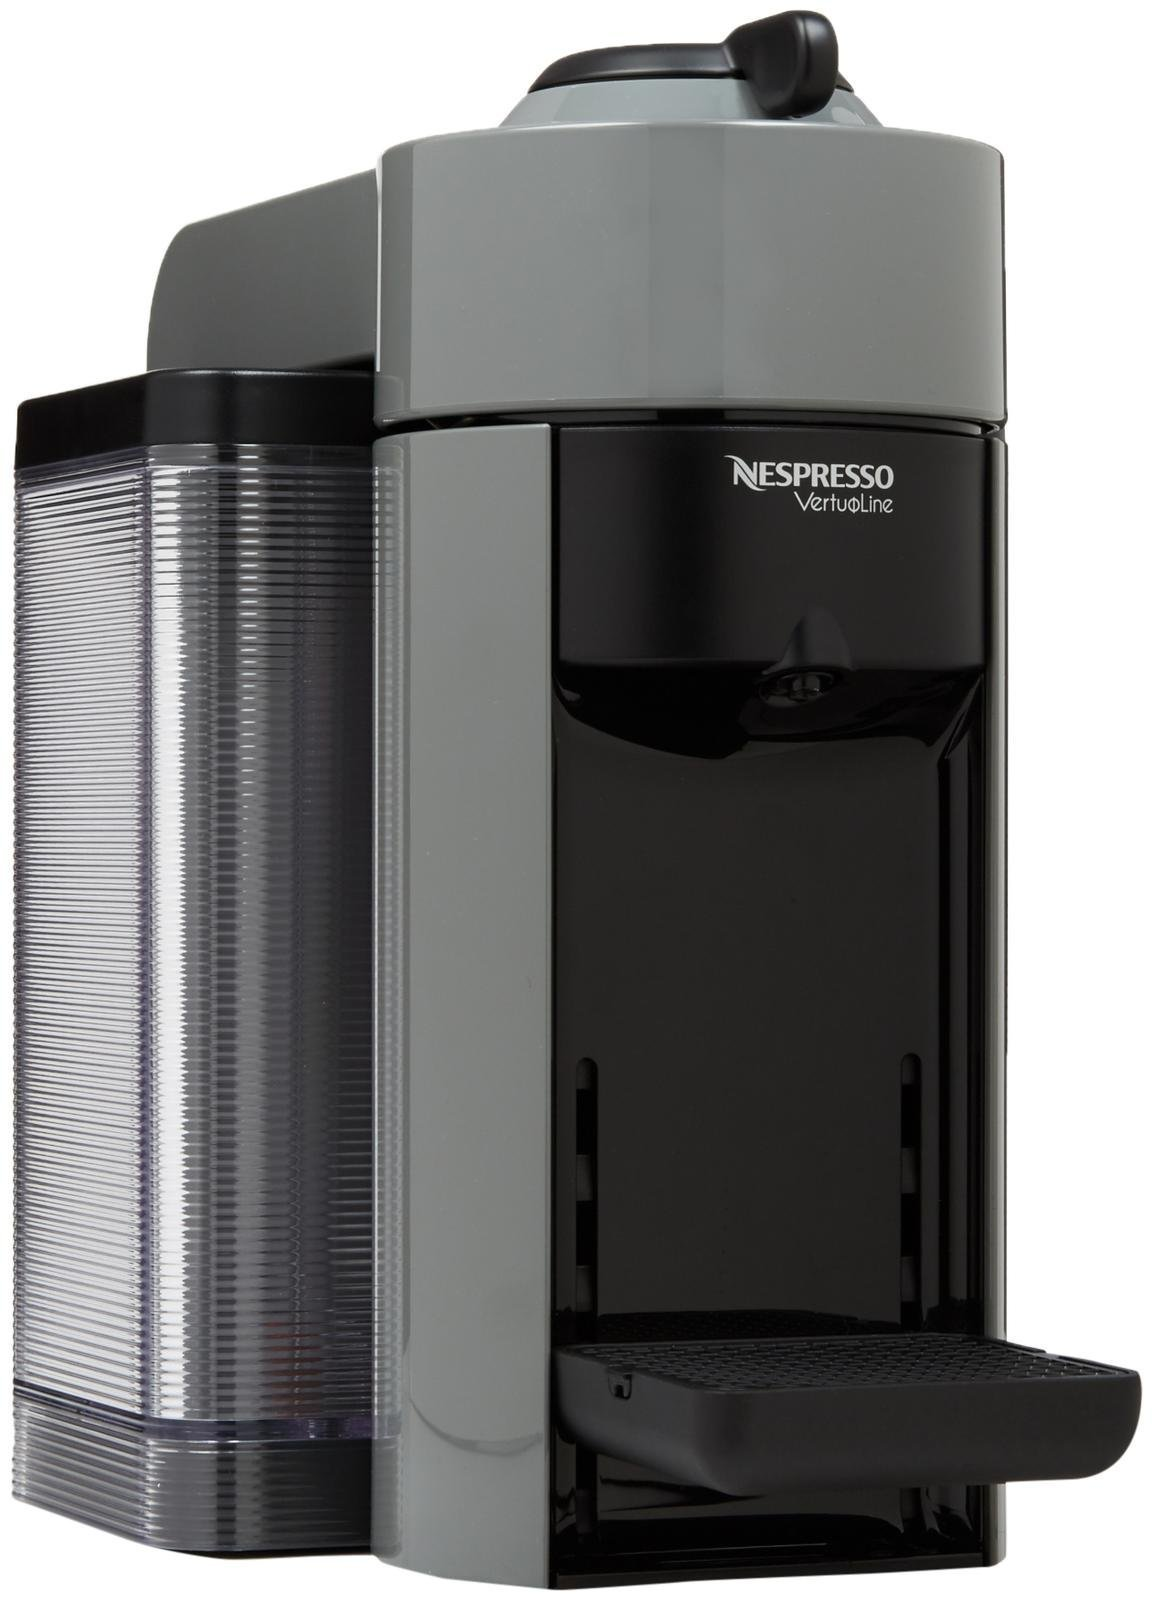 Nespresso GCC1-US-GR-NE VertuoLine Evoluo Coffee and Espresso Maker, Grey (Discontinued Model)